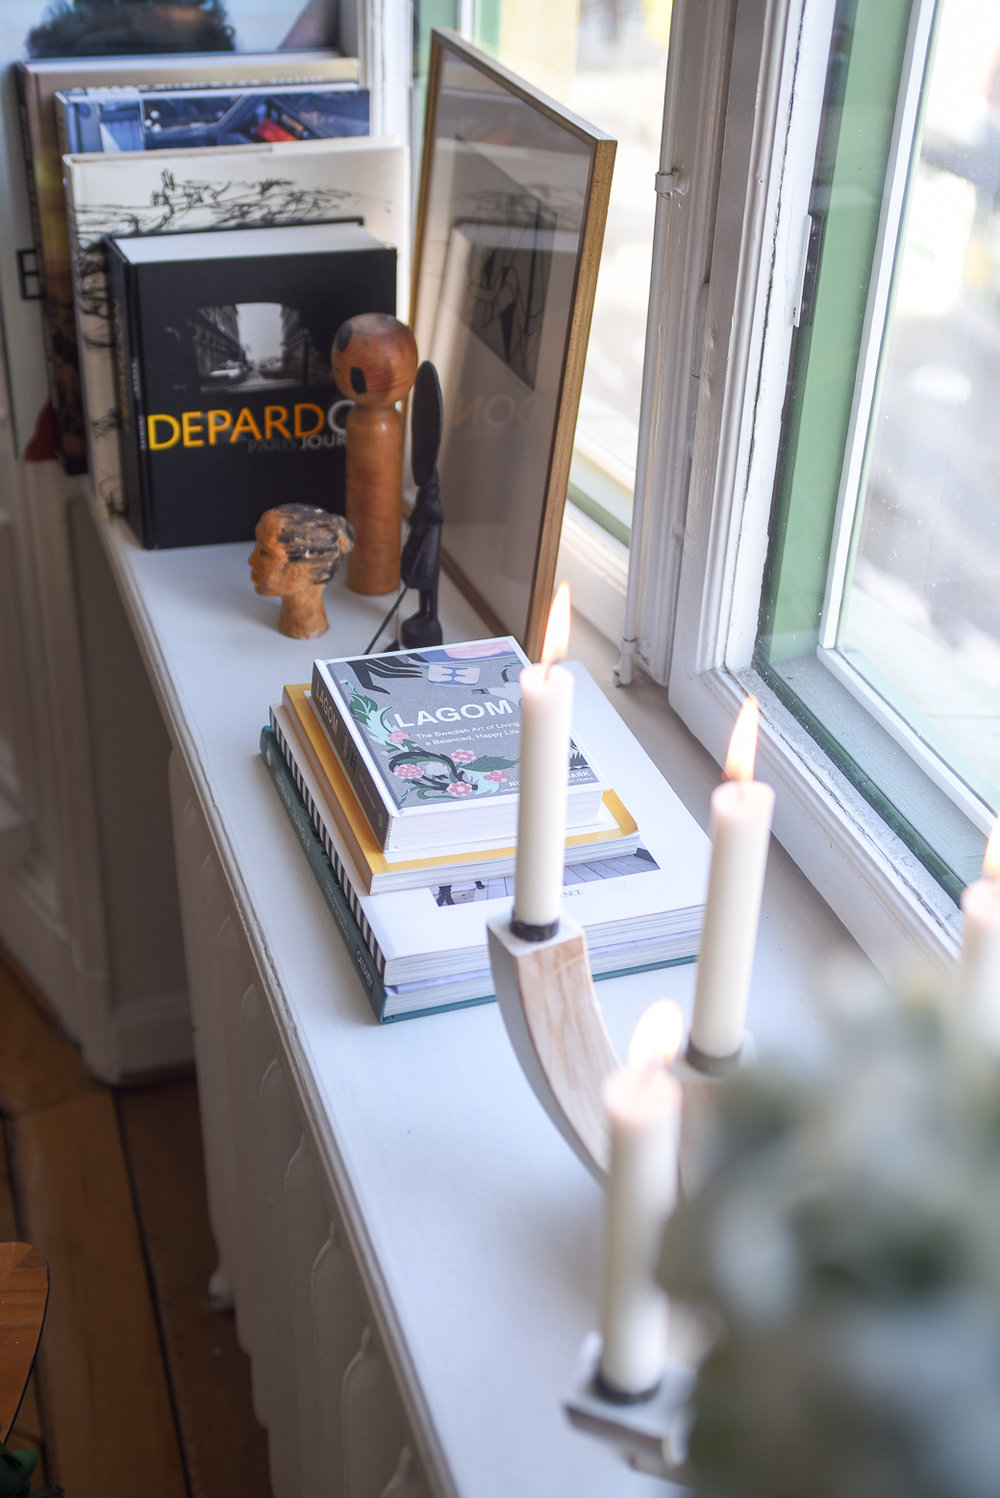 Every day Swedish Design in the home-nordic candleholder + lagom.jpg